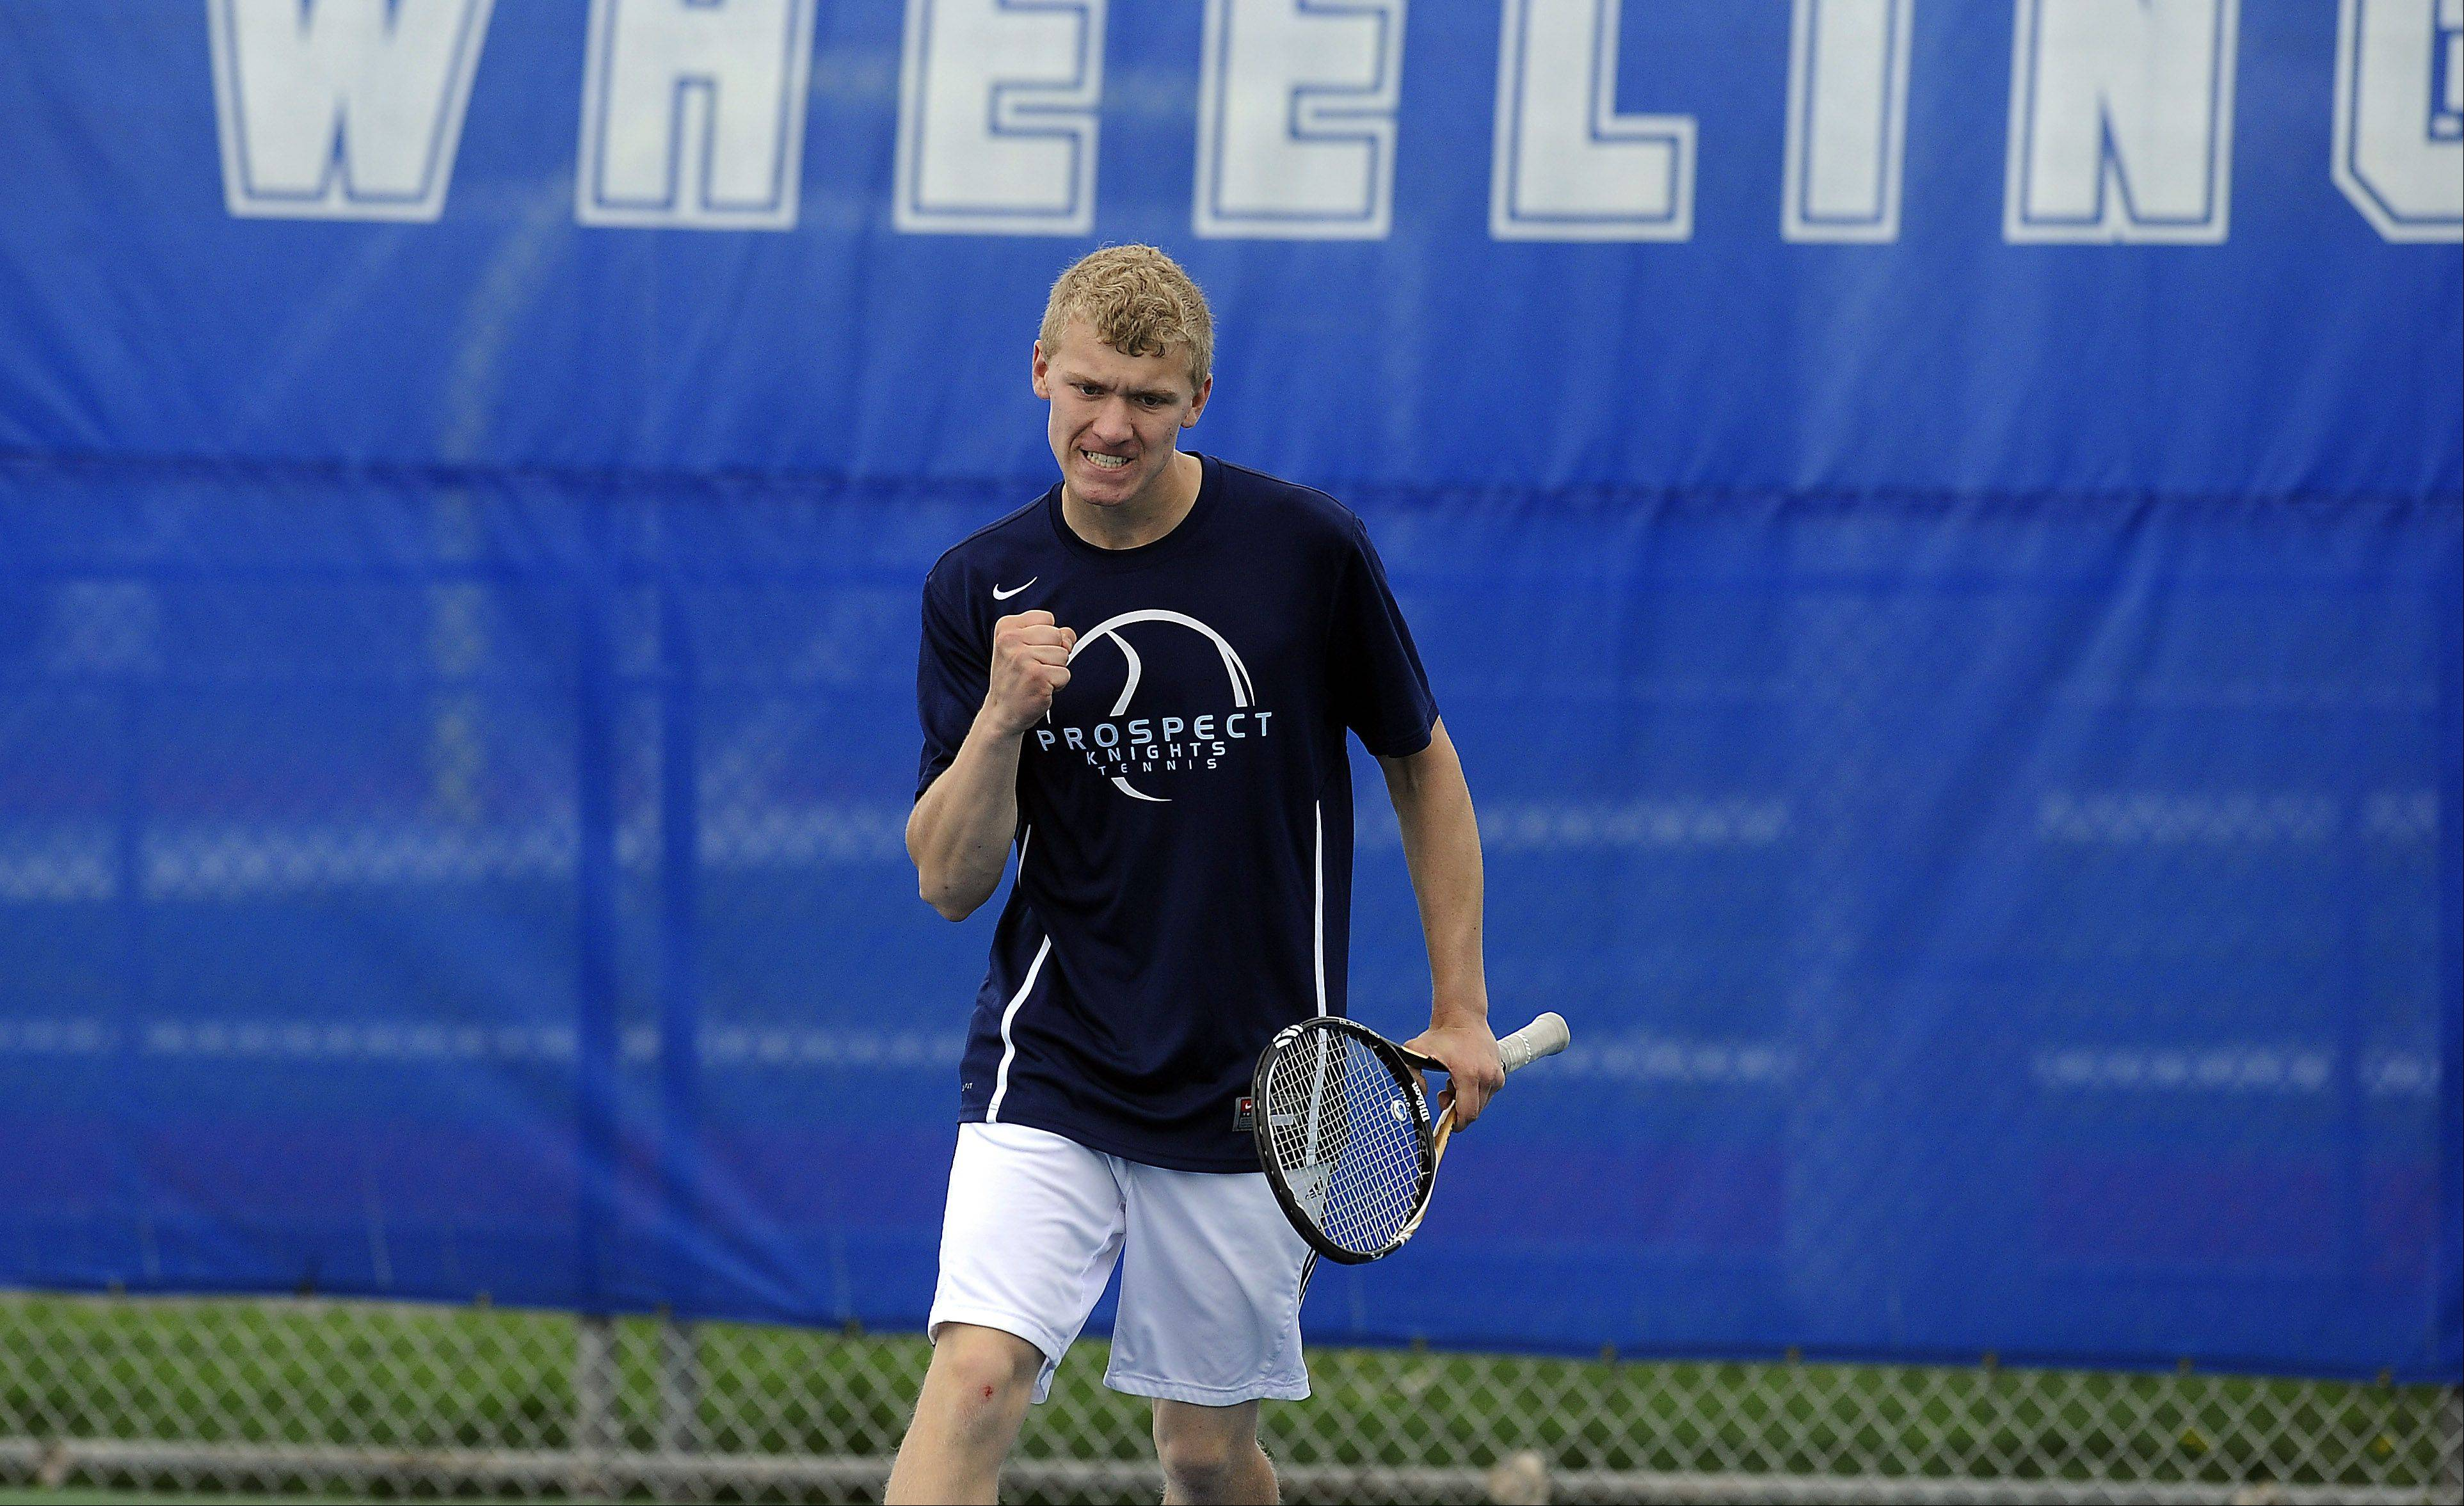 Carson Burke of Prospect pumps his fist after he scores a point against Fremd's Maciej Niemcyzk in the Mid-Suburban League No. 1 singles quarterfinals at Wheeling on Saturday.